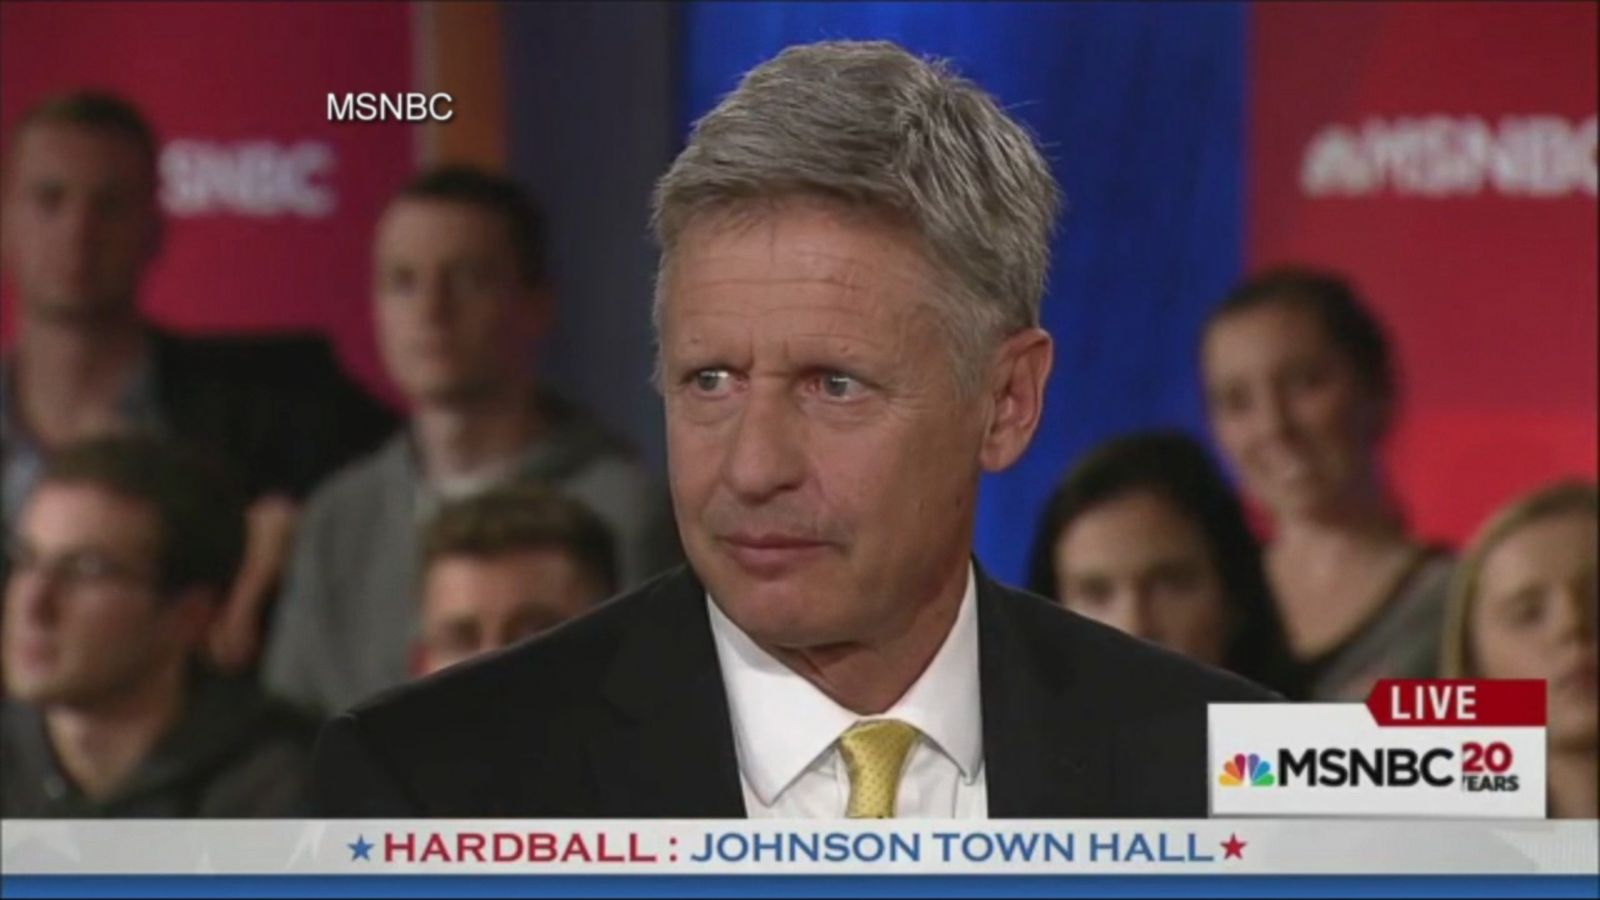 VIDEO: Gary Johnson has once again demonstrated that foreign policy may not be his strong point.